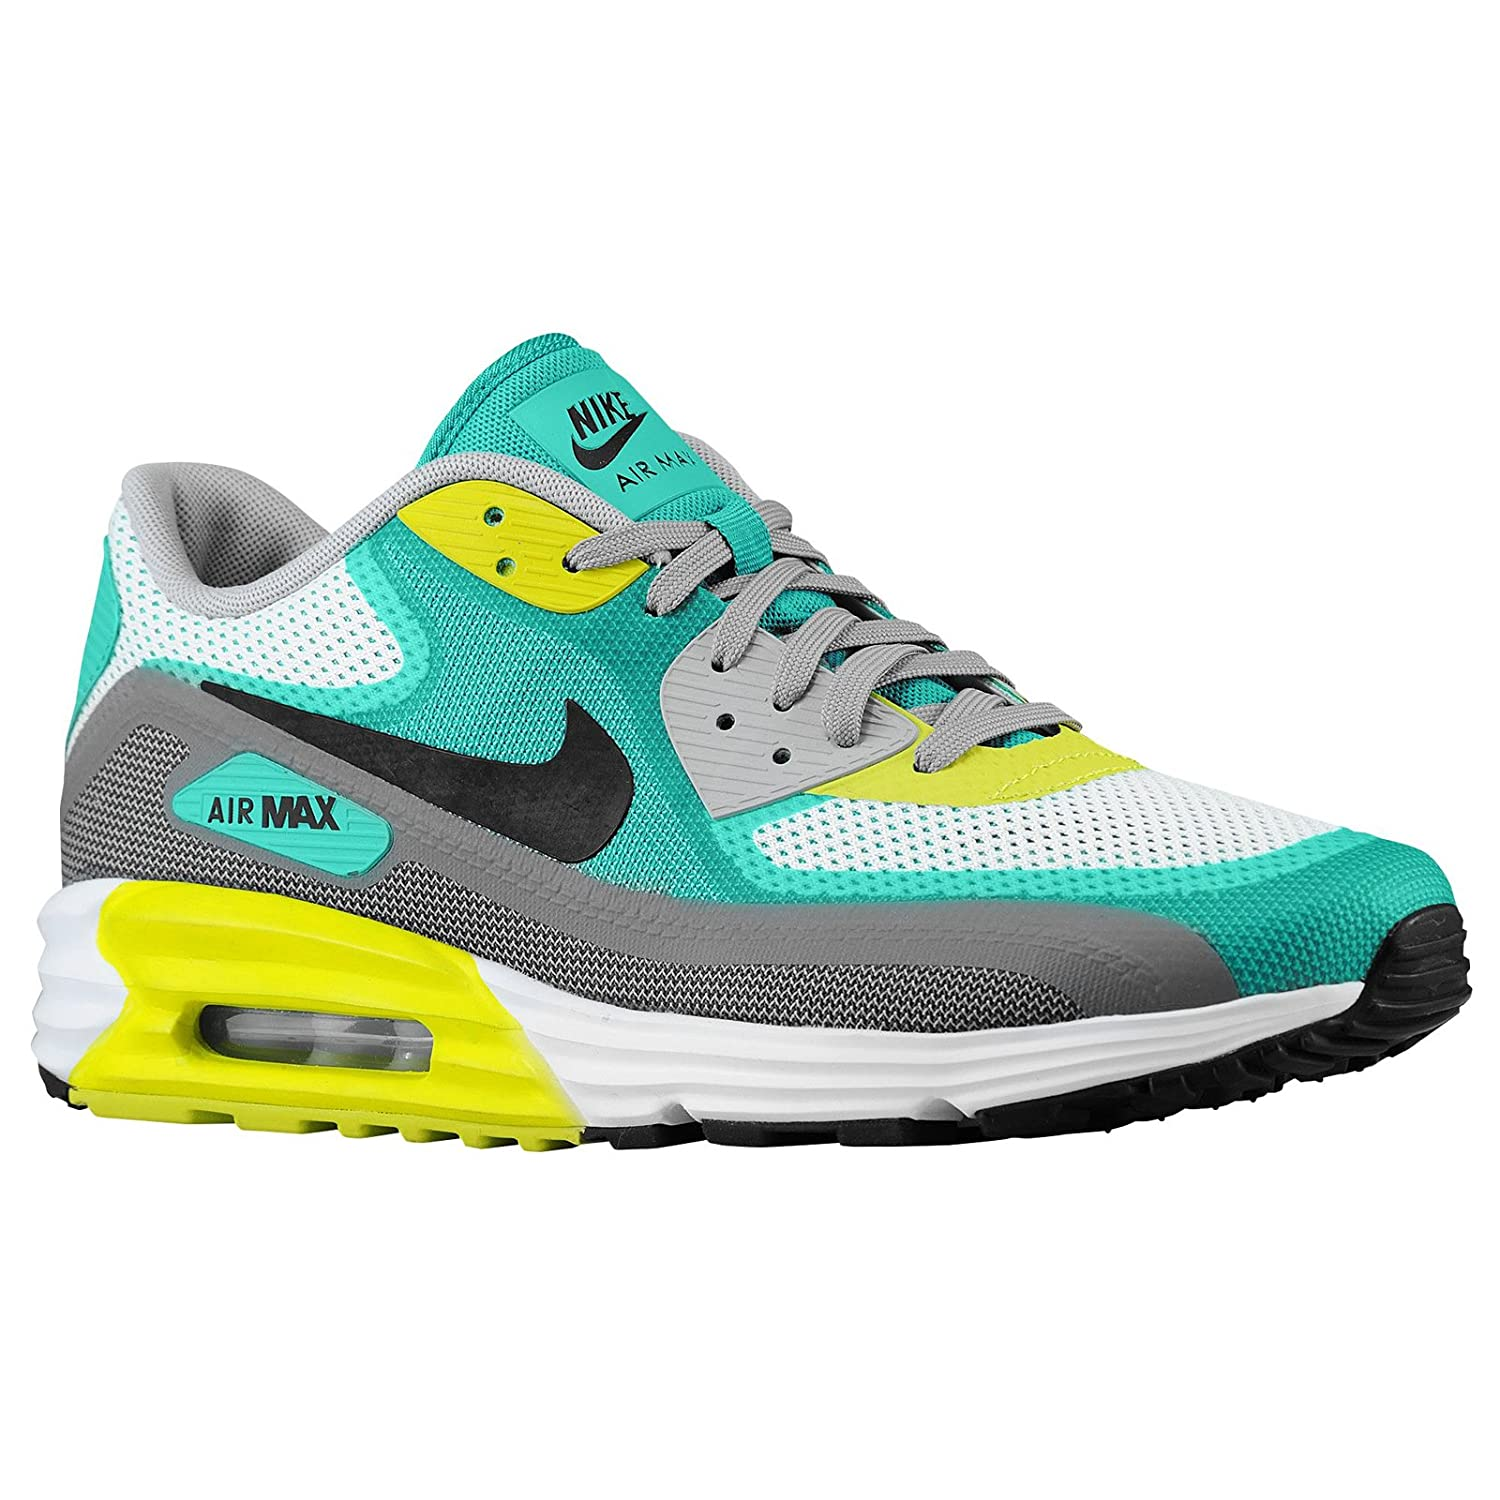 Nike Air Max 90 (GSM34), Size 39: Amazon.co.uk: Shoes & Bags